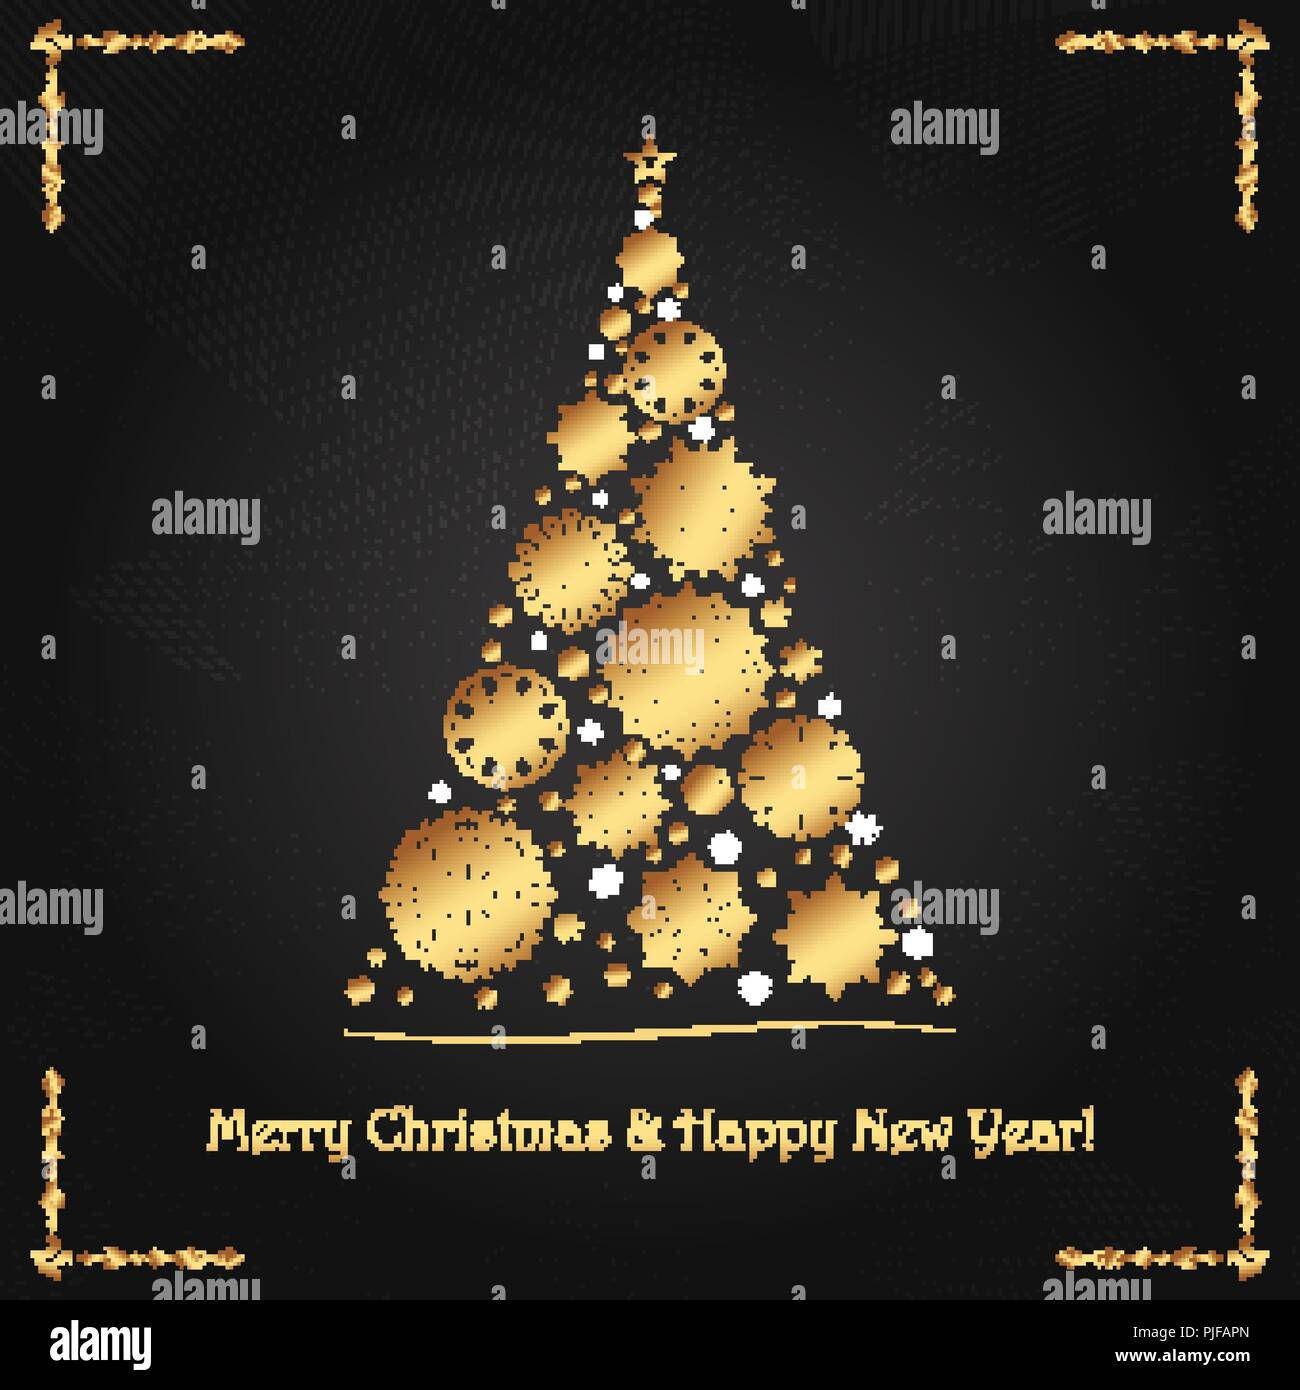 Elegant Luxurious Greeting Card For Christmas And New Year Stock